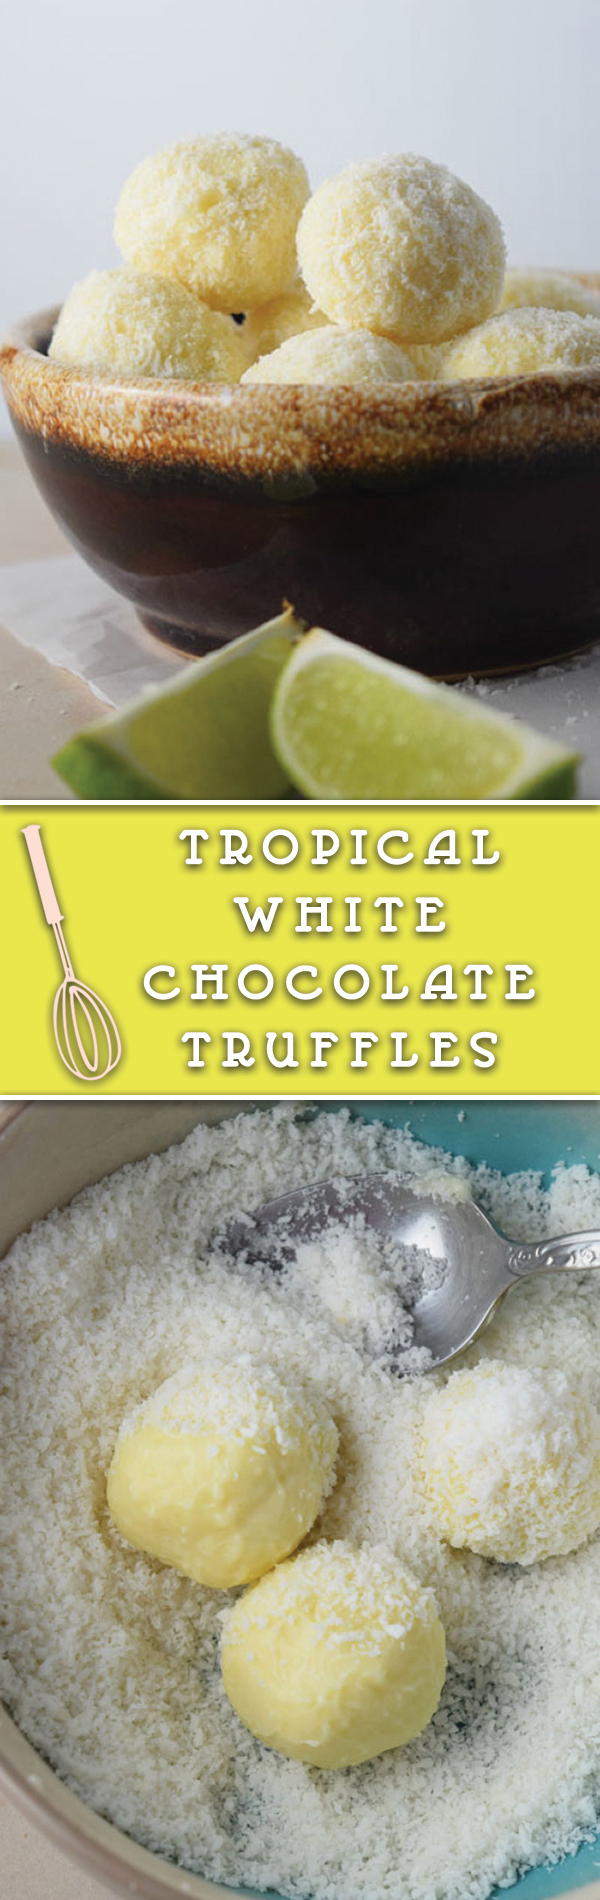 Tropical White Chocolate Truffles :- Delicious white chocolate truffles coated with coconut. They are a perfect treat!